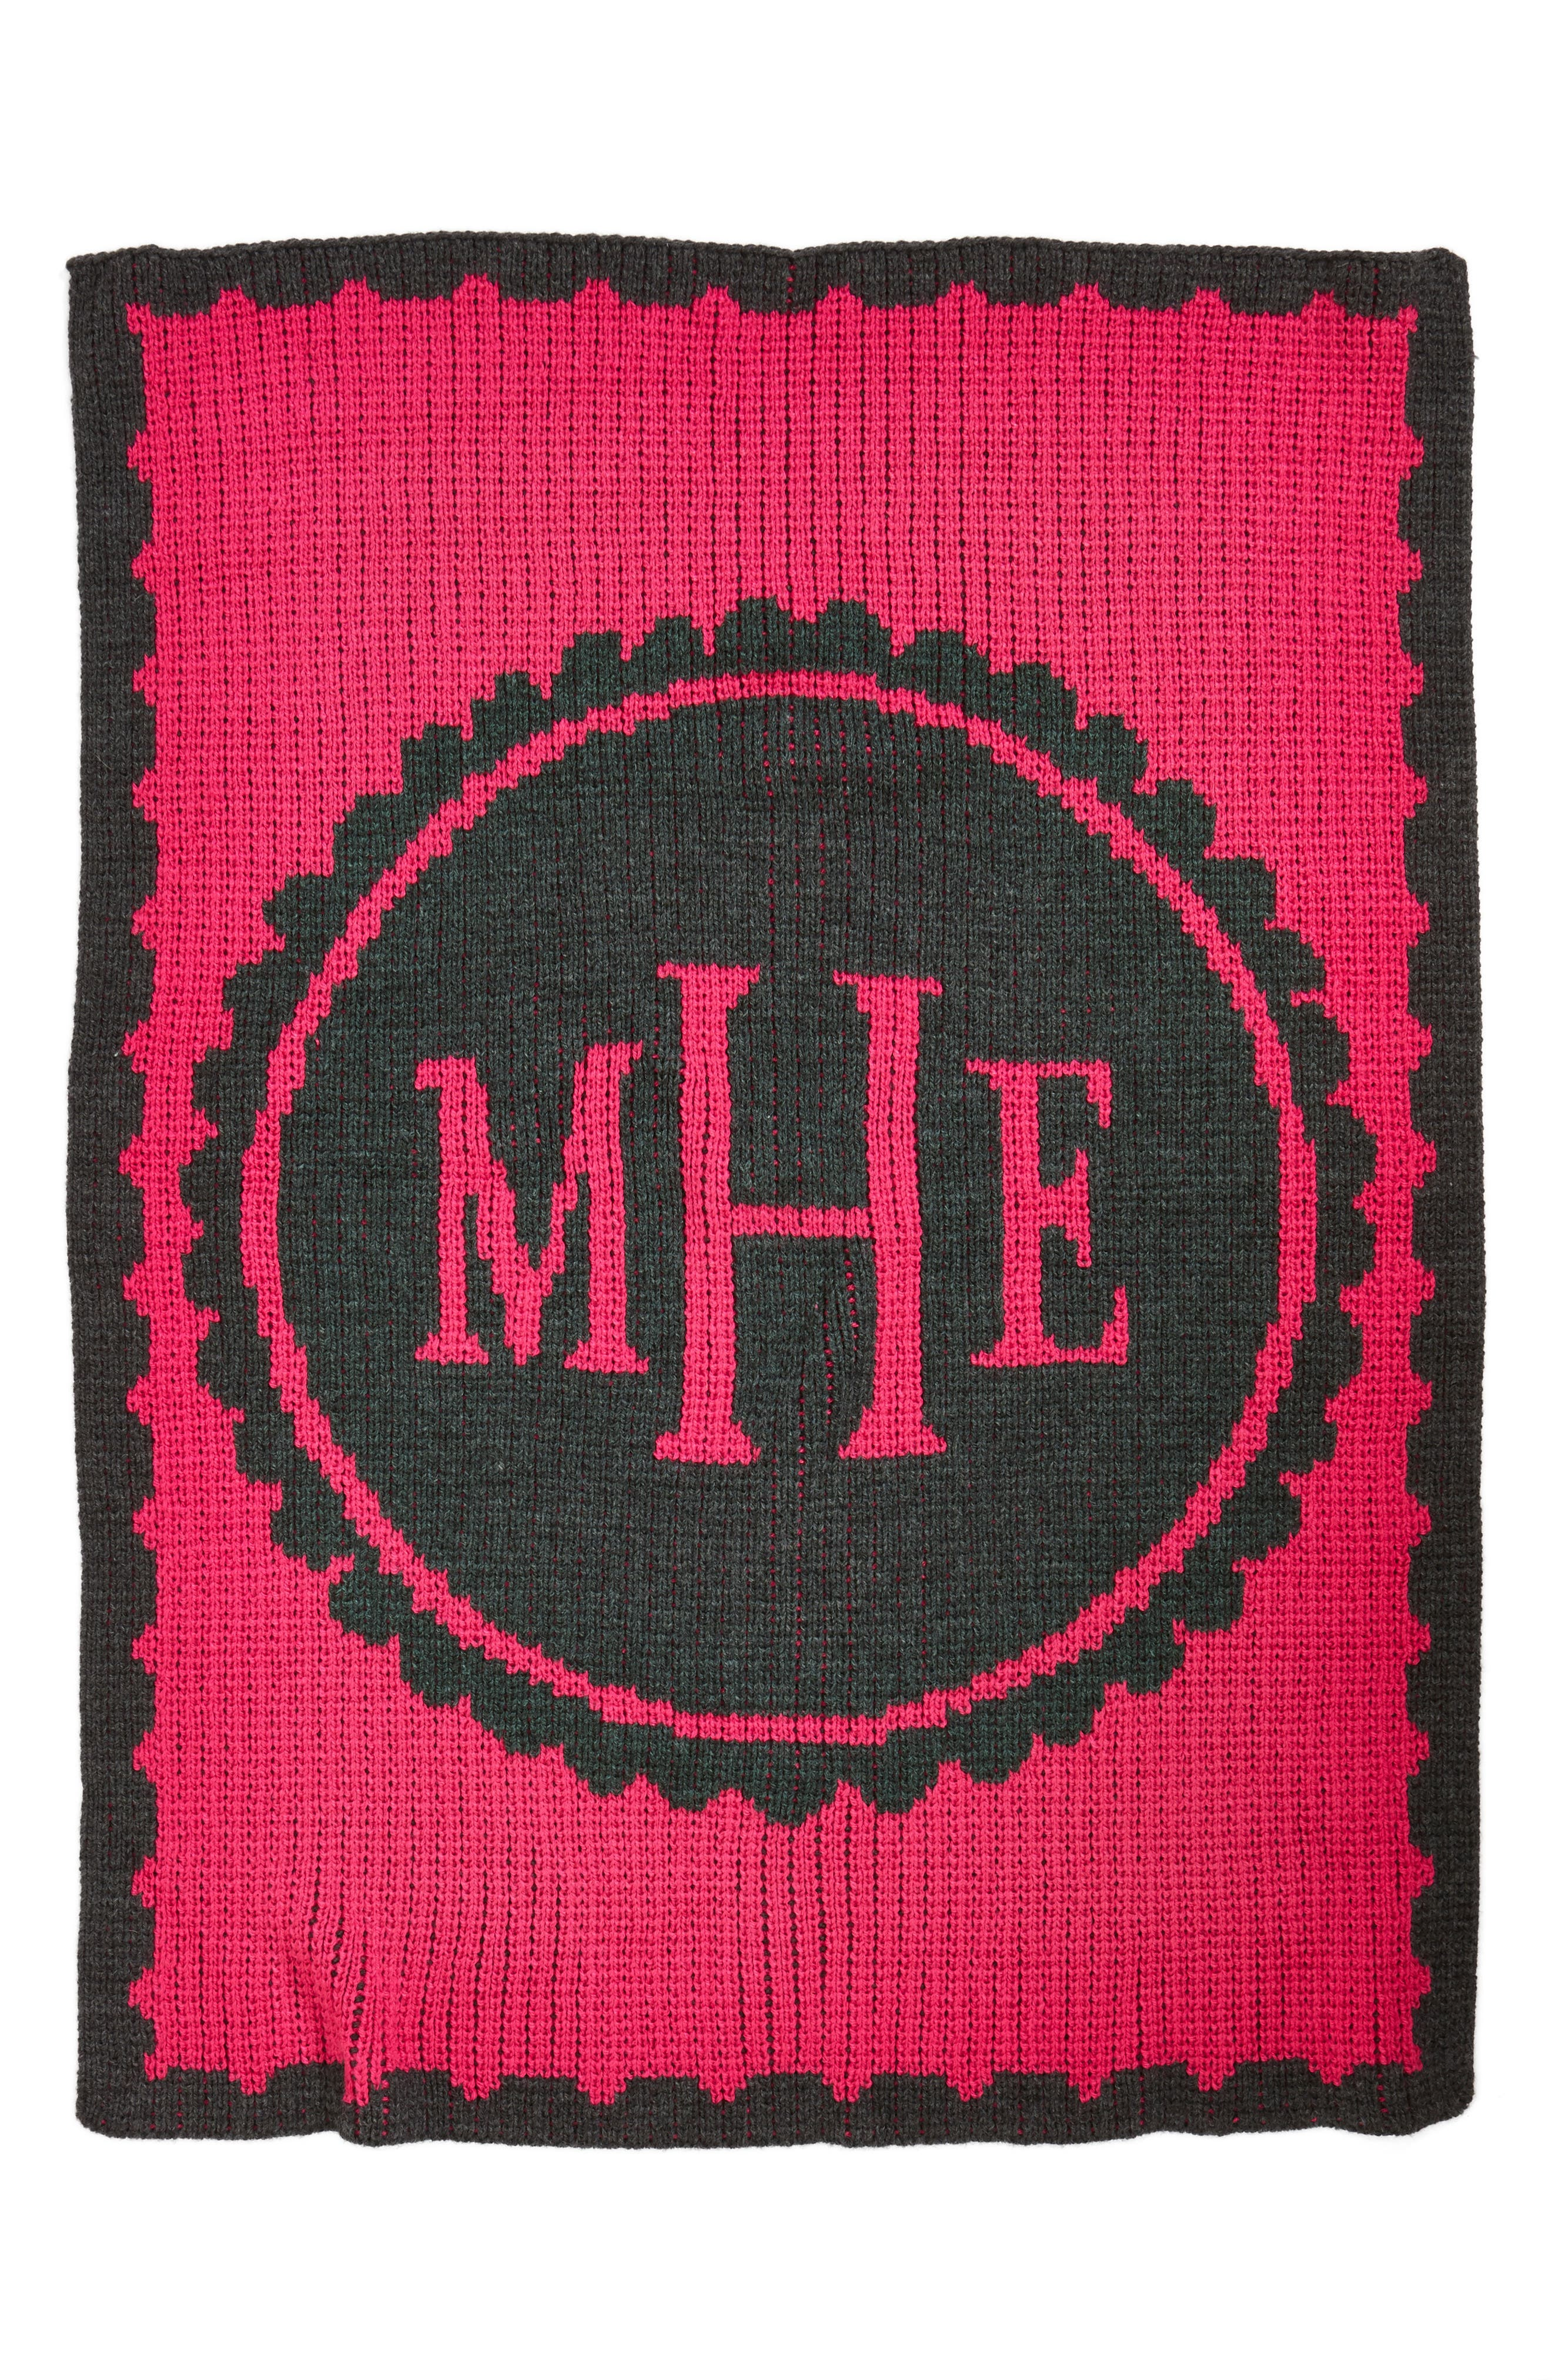 'Scalloped - Small' Personalized Blanket,                             Alternate thumbnail 2, color,                             CHARCOAL GREY/ FUSCHIA